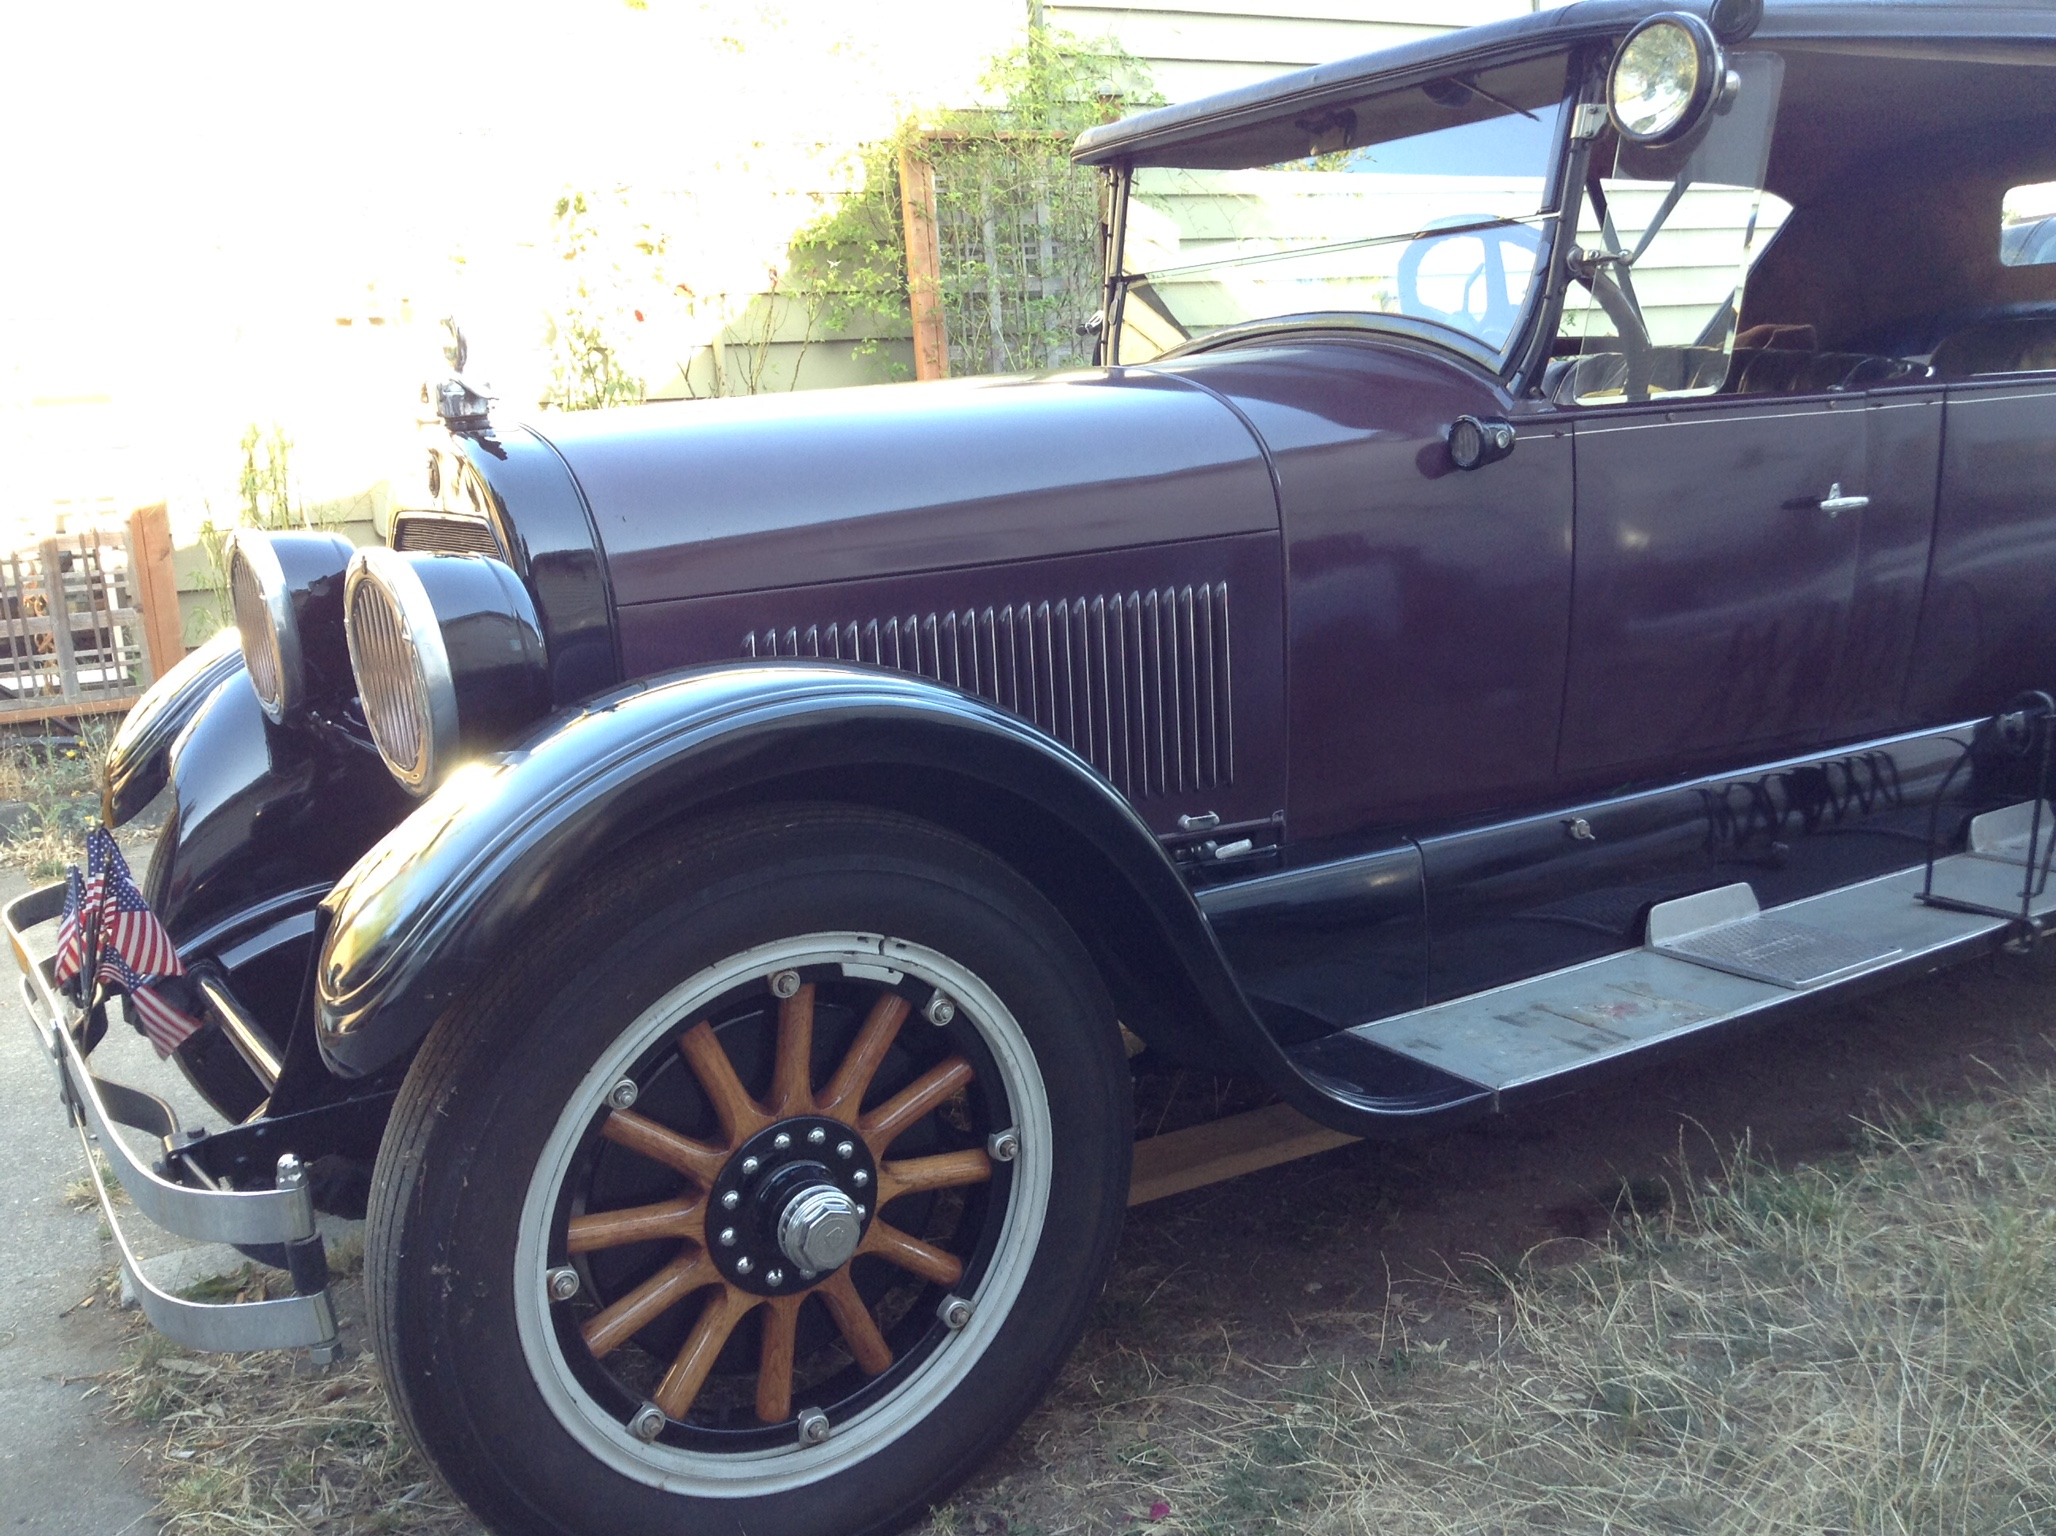 Wooden Spoke Wheels Our Cars Amp Restoration Projects Antique Automobile Club Of America